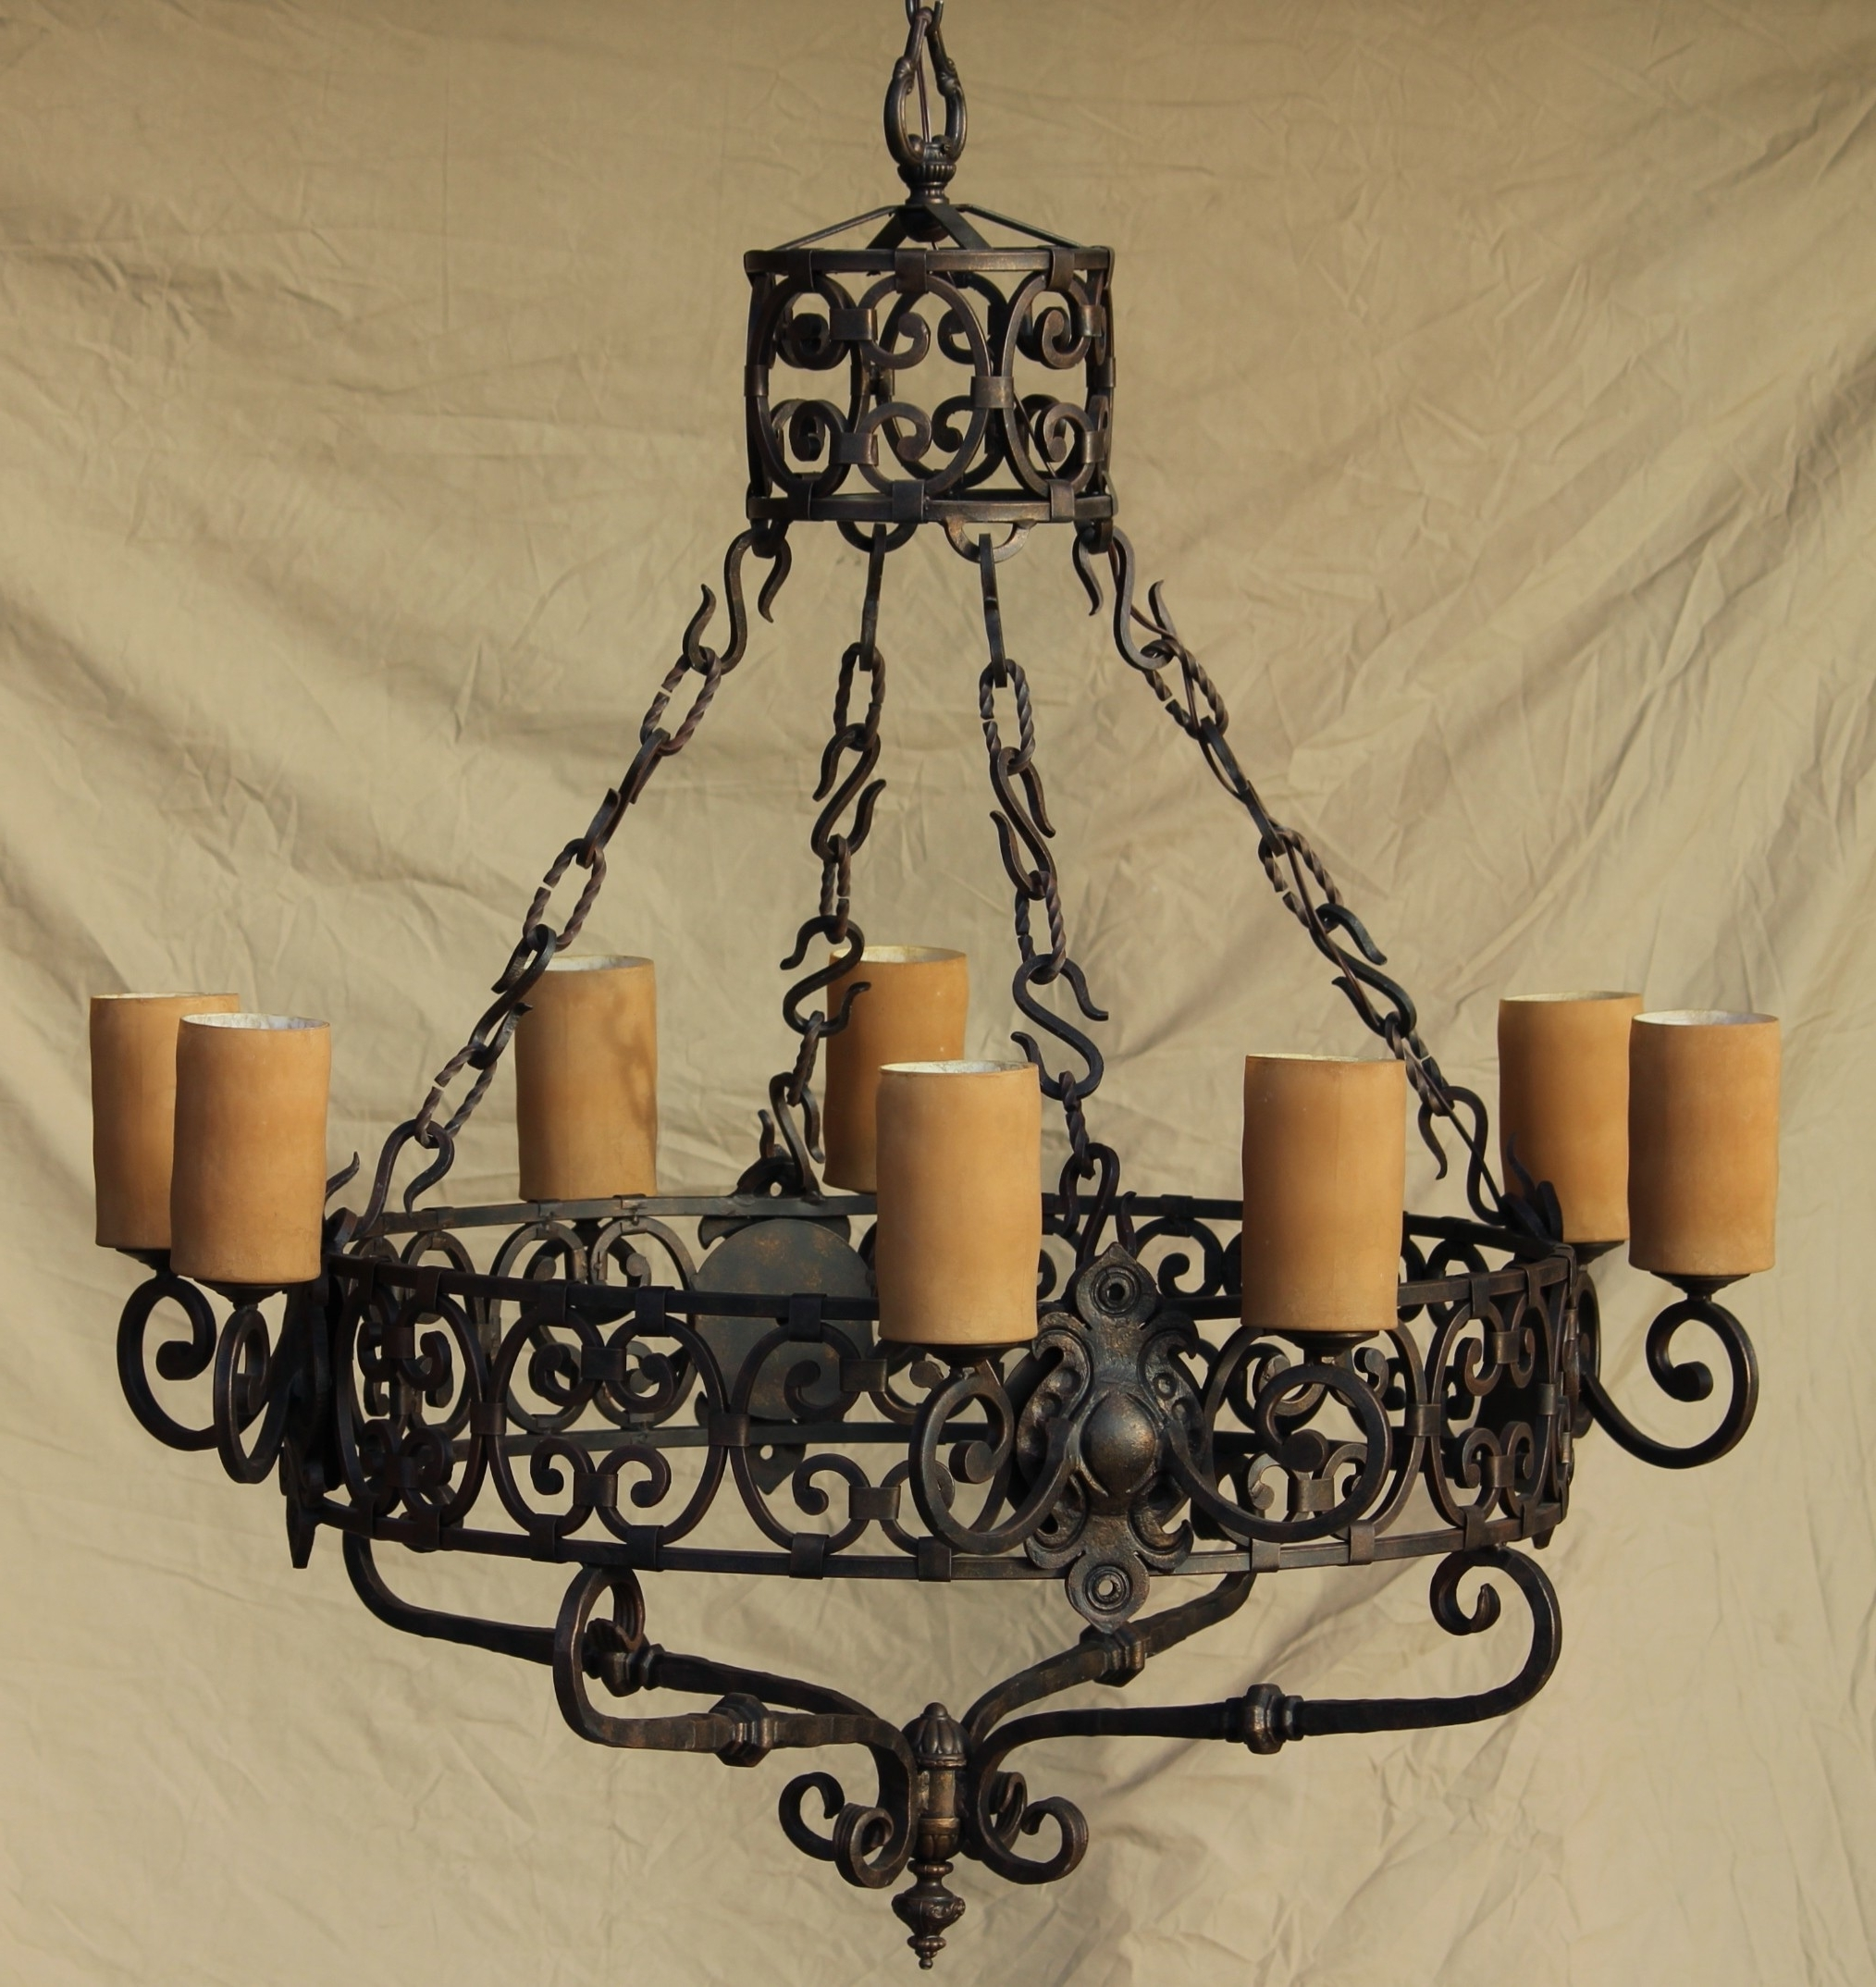 Wrought Iron Chandelier Intended For Latest Lights Of Tuscany Chandeliers – Ceiling Fixtures – Fixtures (View 13 of 20)